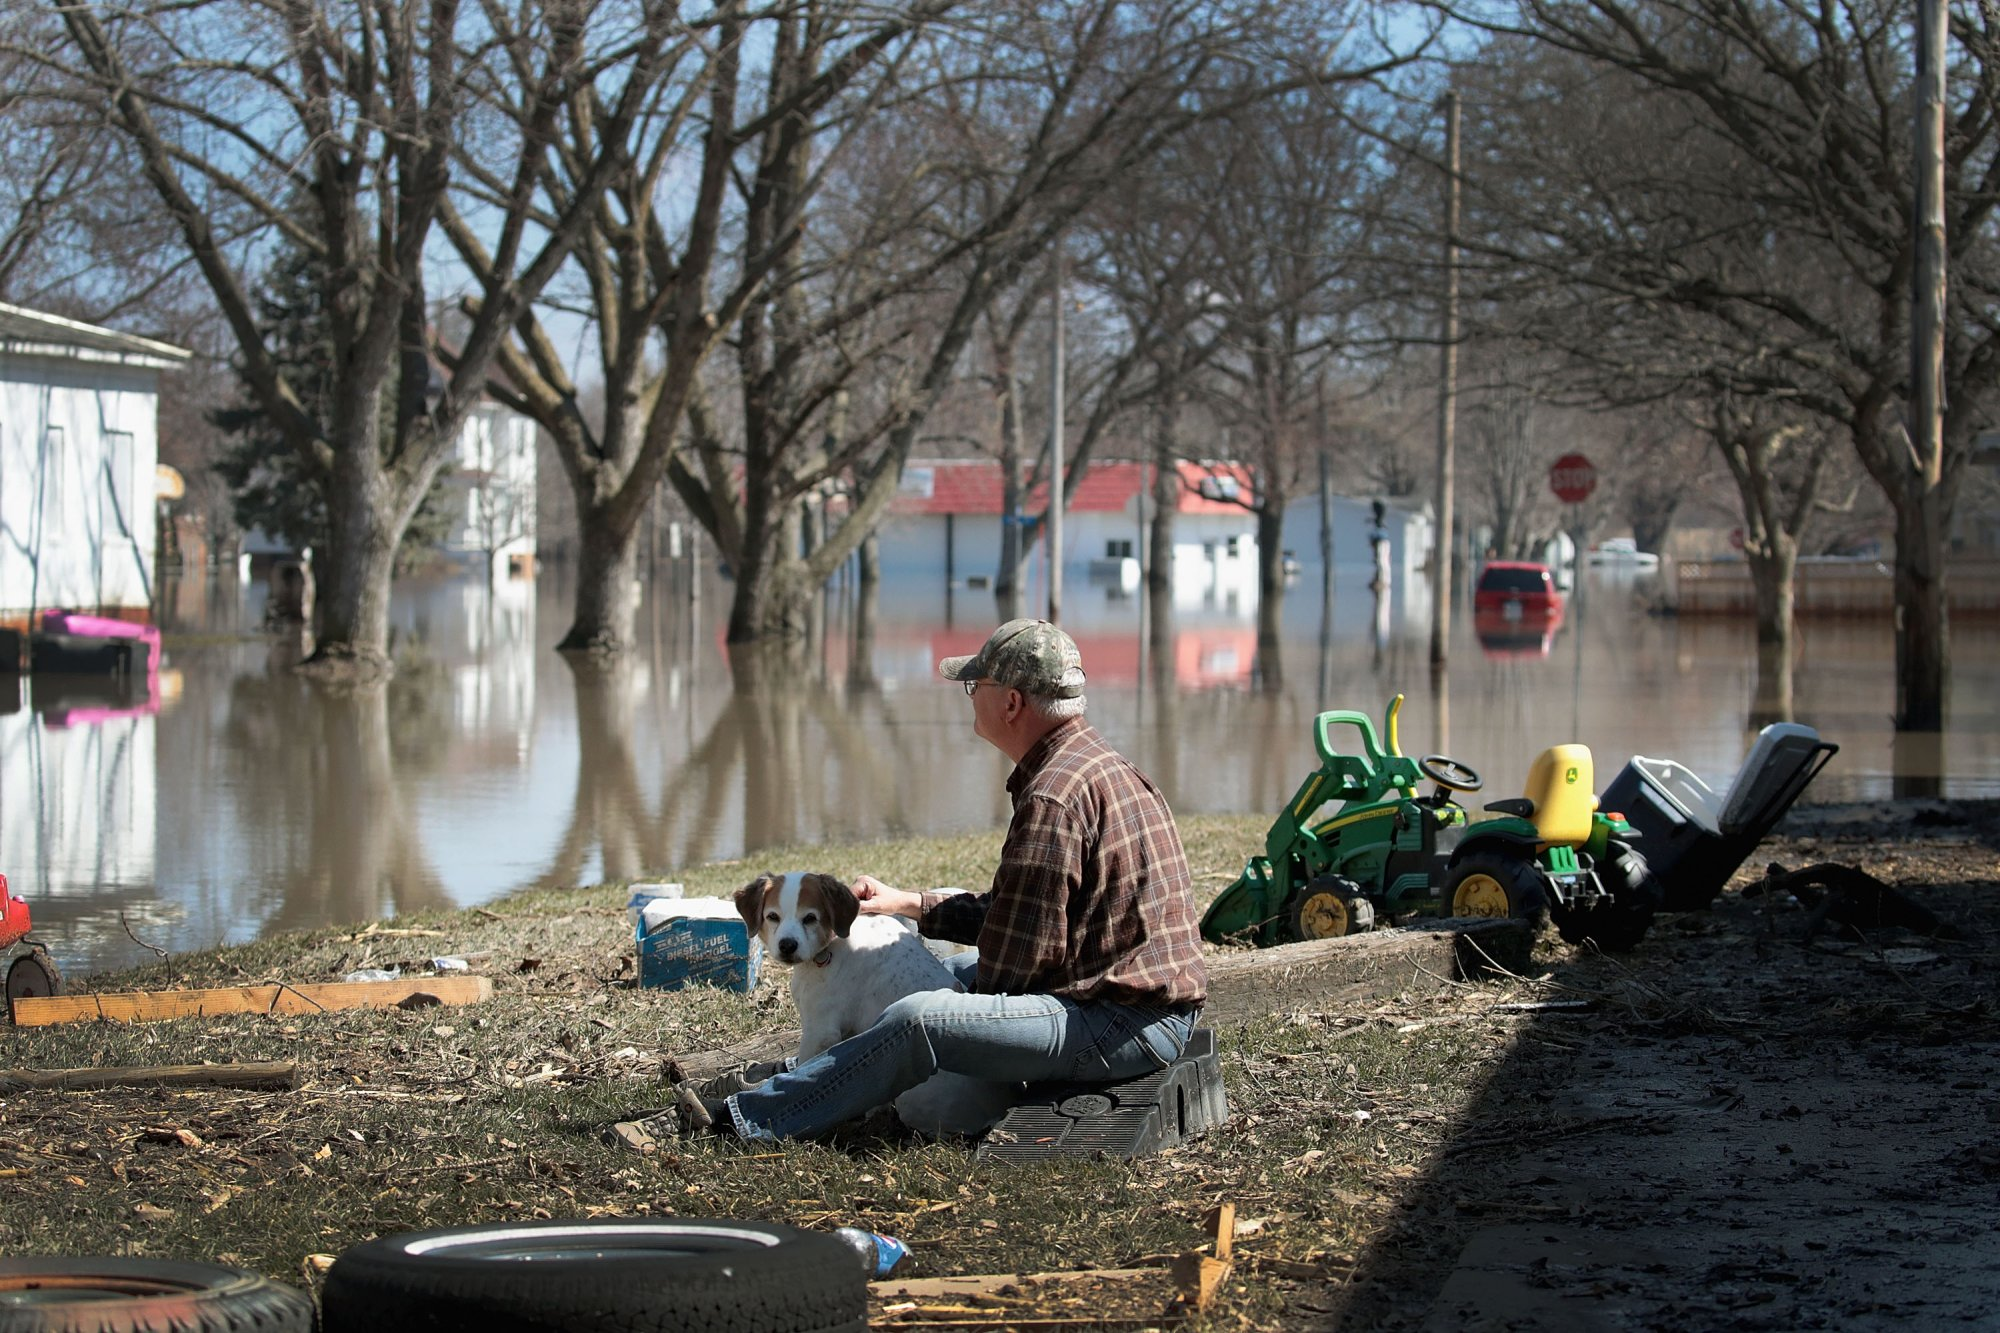 "HAMBURG, IOWA - MARCH 20:  Dave Mincer sits along a flooded street with a friend's dog on March 20, 2019 in Hamburg, Iowa. Although flood water in the town has started to recede many homes and businesses remain surrounded by water. Several Midwest states are battling some of the worst flooding they have experienced in decades as rain and snow melt from the recent ""bomb cyclone"" has inundated rivers and streams. At least three deaths have been linked to the flooding.  (Photo by Scott Olson/Getty Images)"